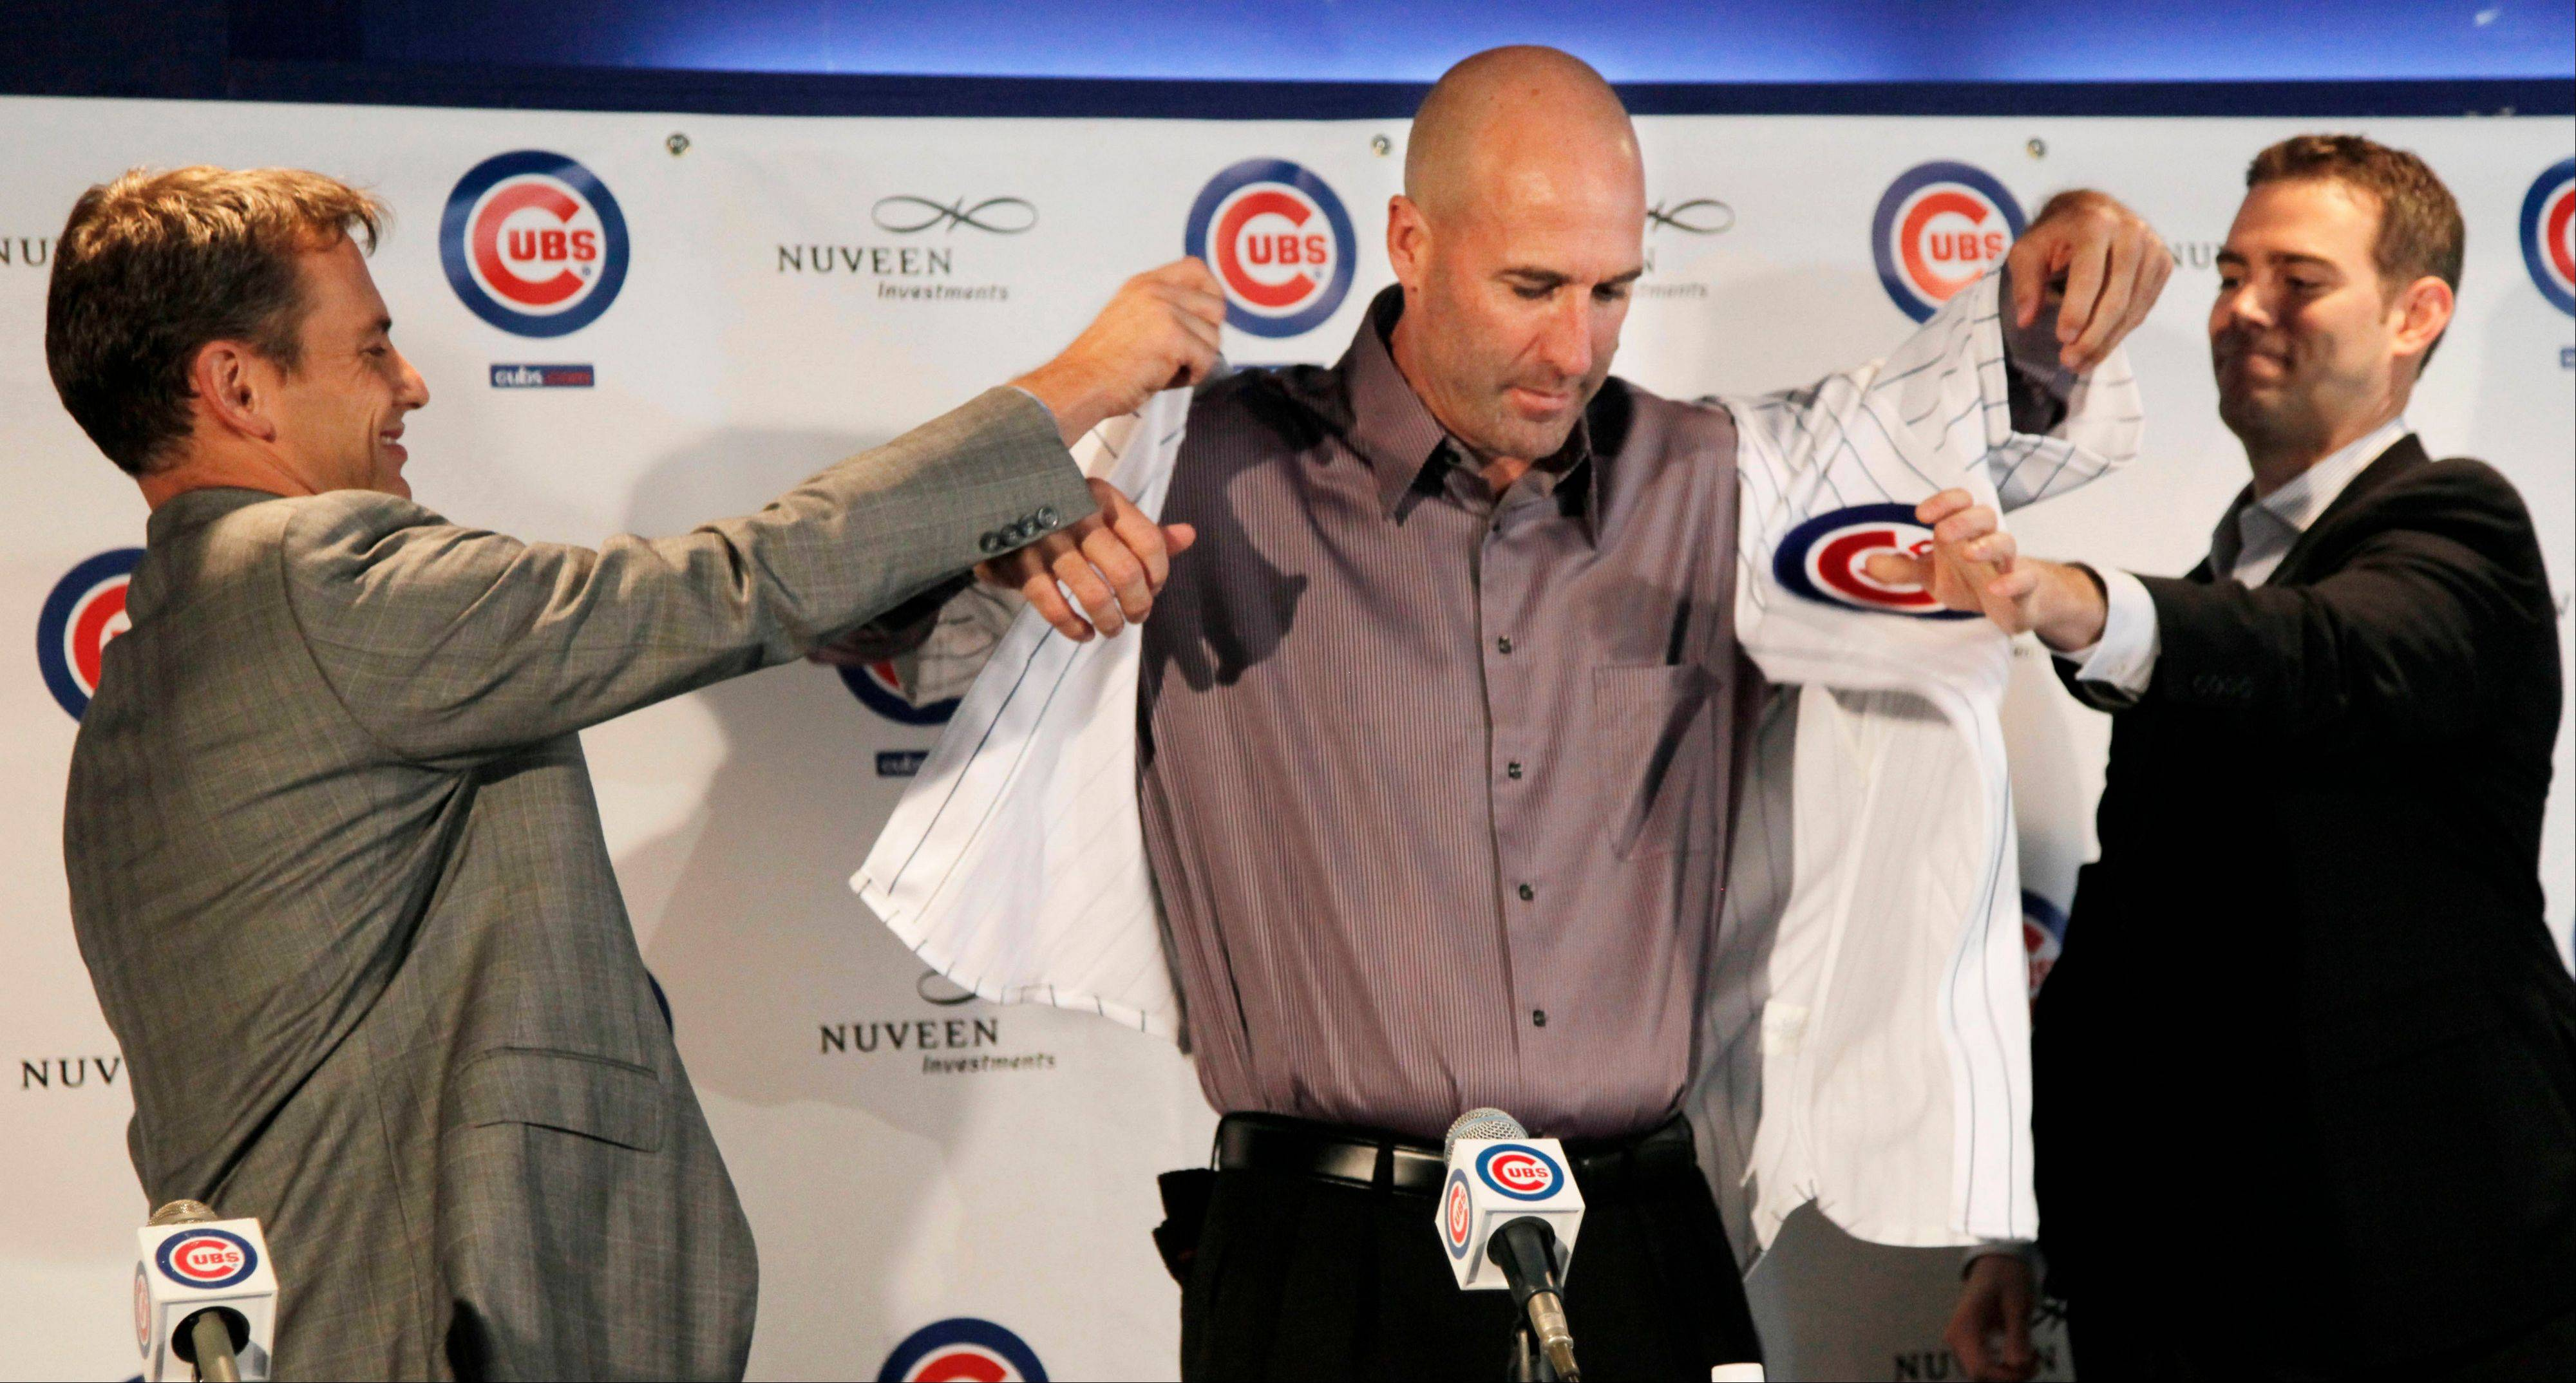 Chicago Cubs general manager Jed Hoyer, left, and president Theo Epstein, right, help new manager Dale Sveum put on Cubs jersey as he is introduced during a baseball news conference, Friday, Nov. 18, 2011, in Chicago.